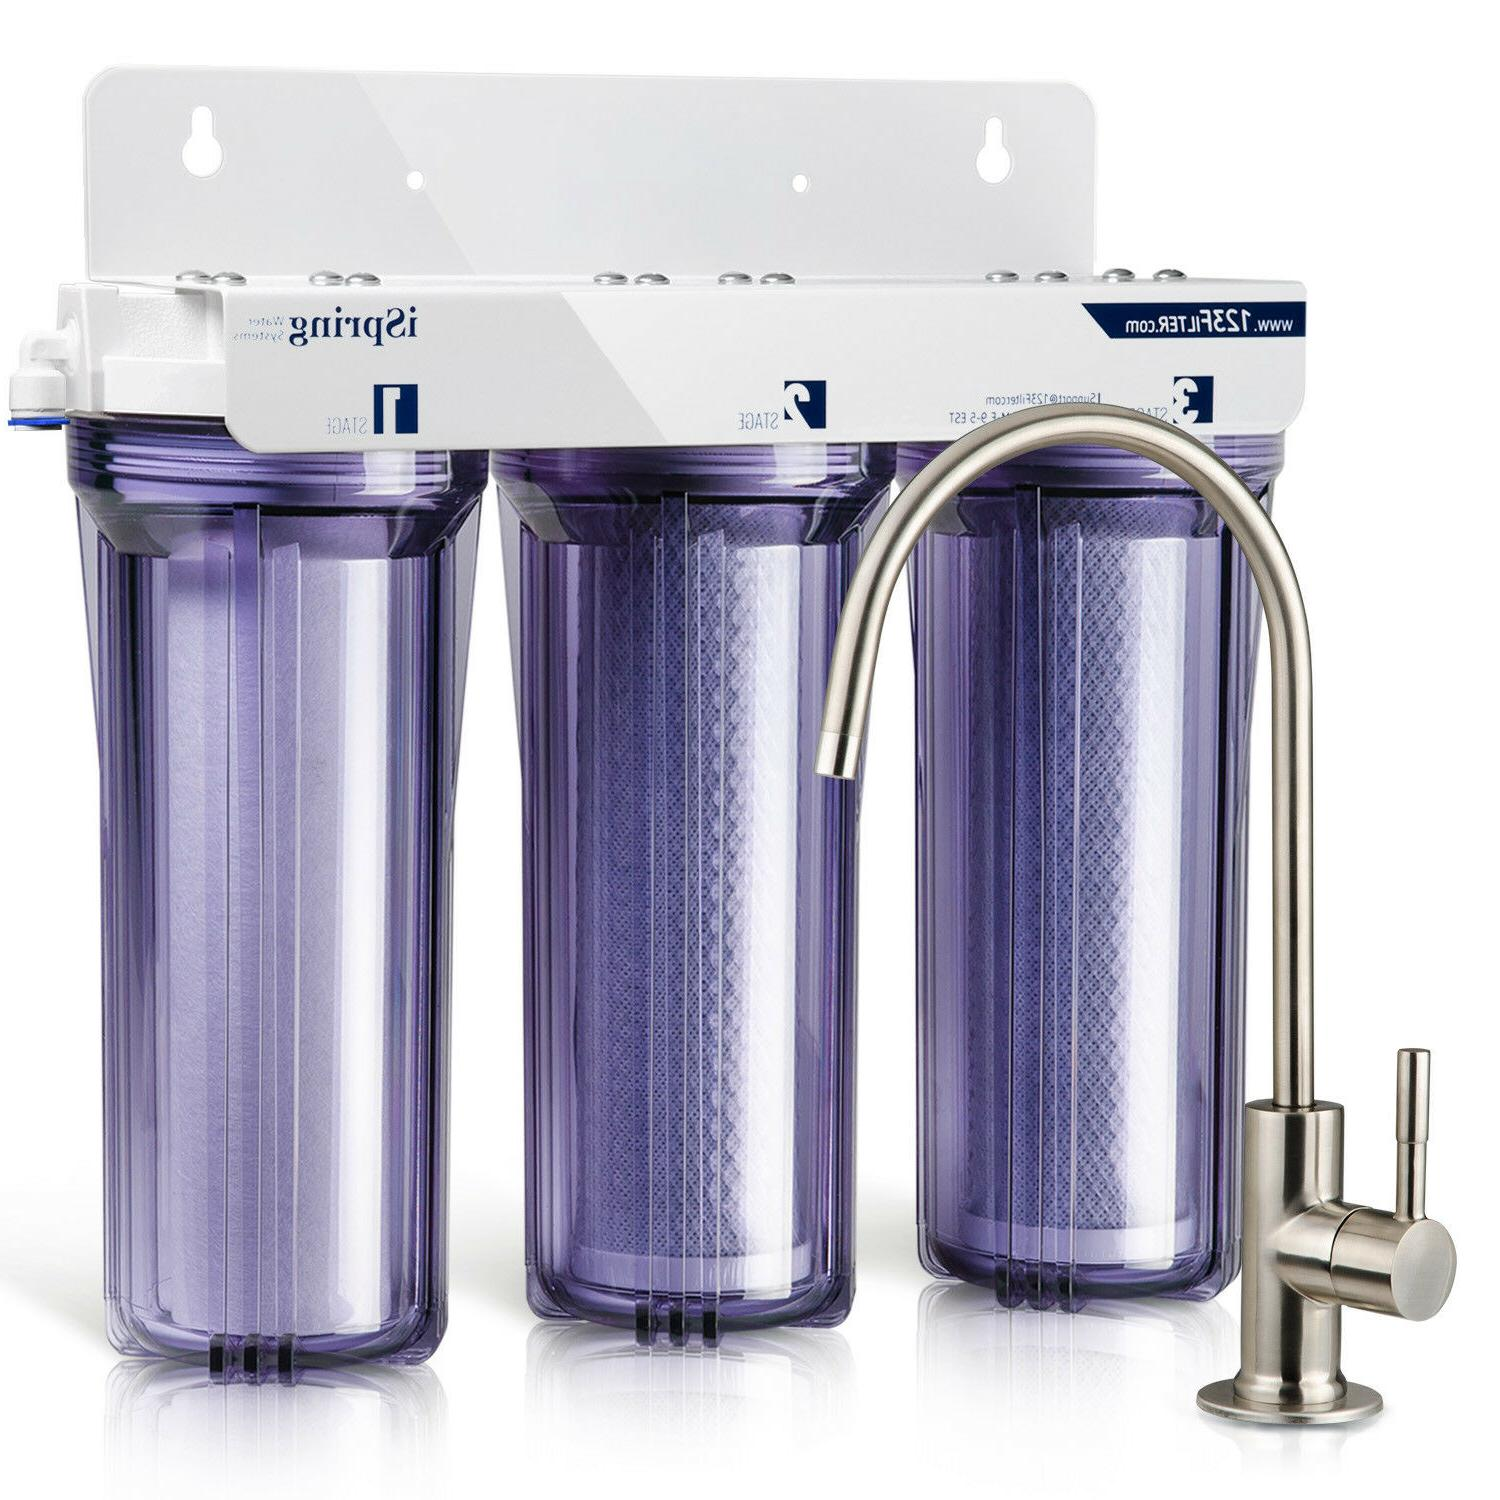 iSpring Under Sink Tankless Drinking Water Filtration - Filters